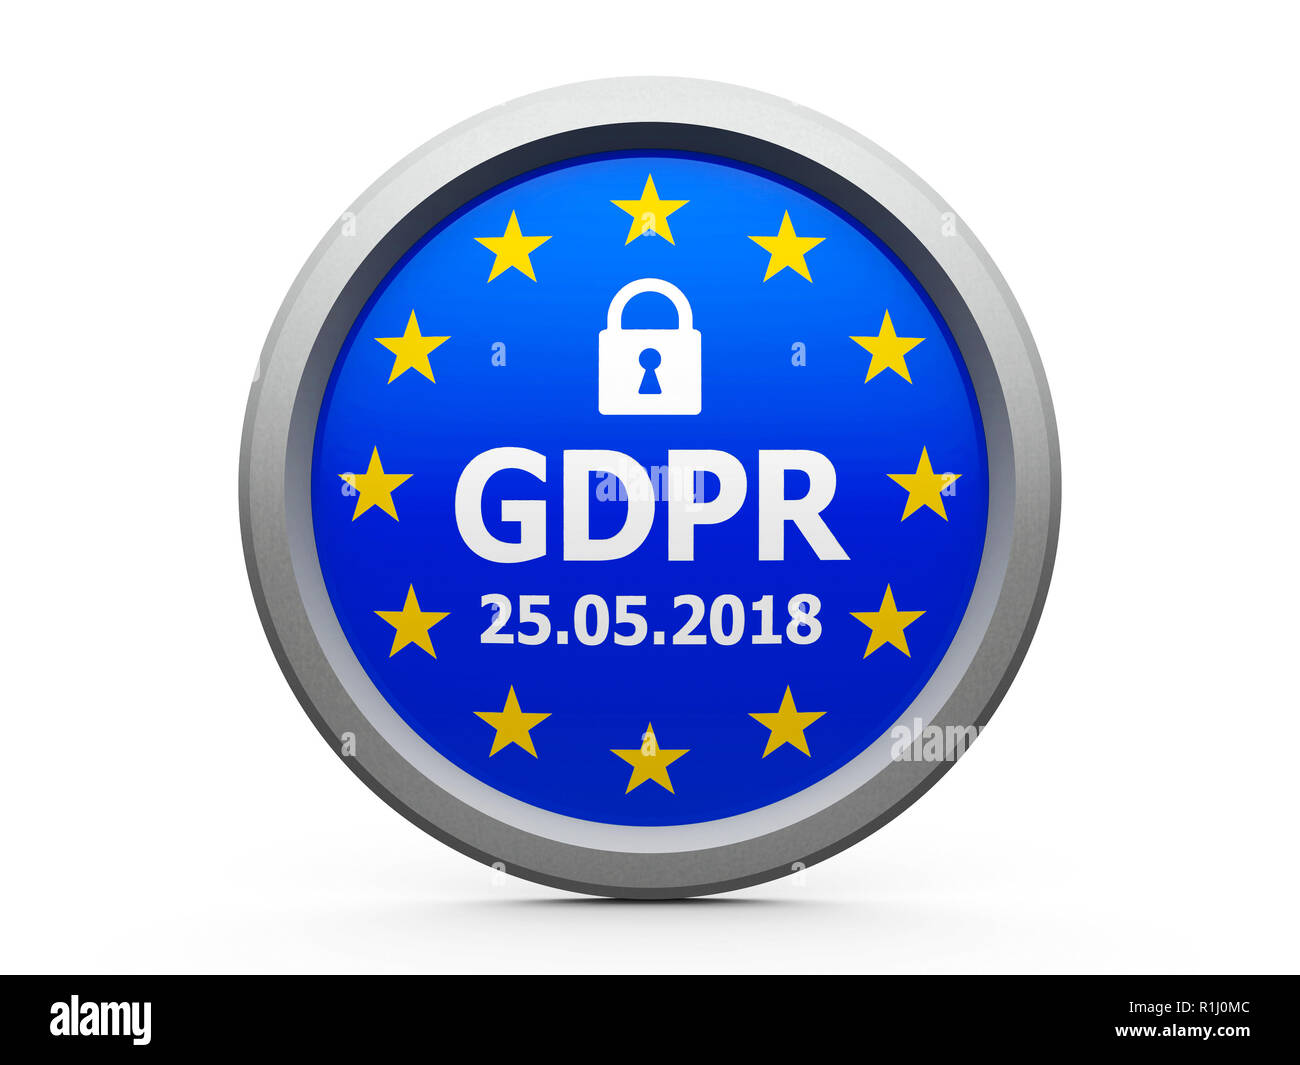 Emblem of flag of European Union  with text - The Twenty Fifth of May - and symbol of padlock - represents the Implementation date 2018 of GDPR - Gene - Stock Image